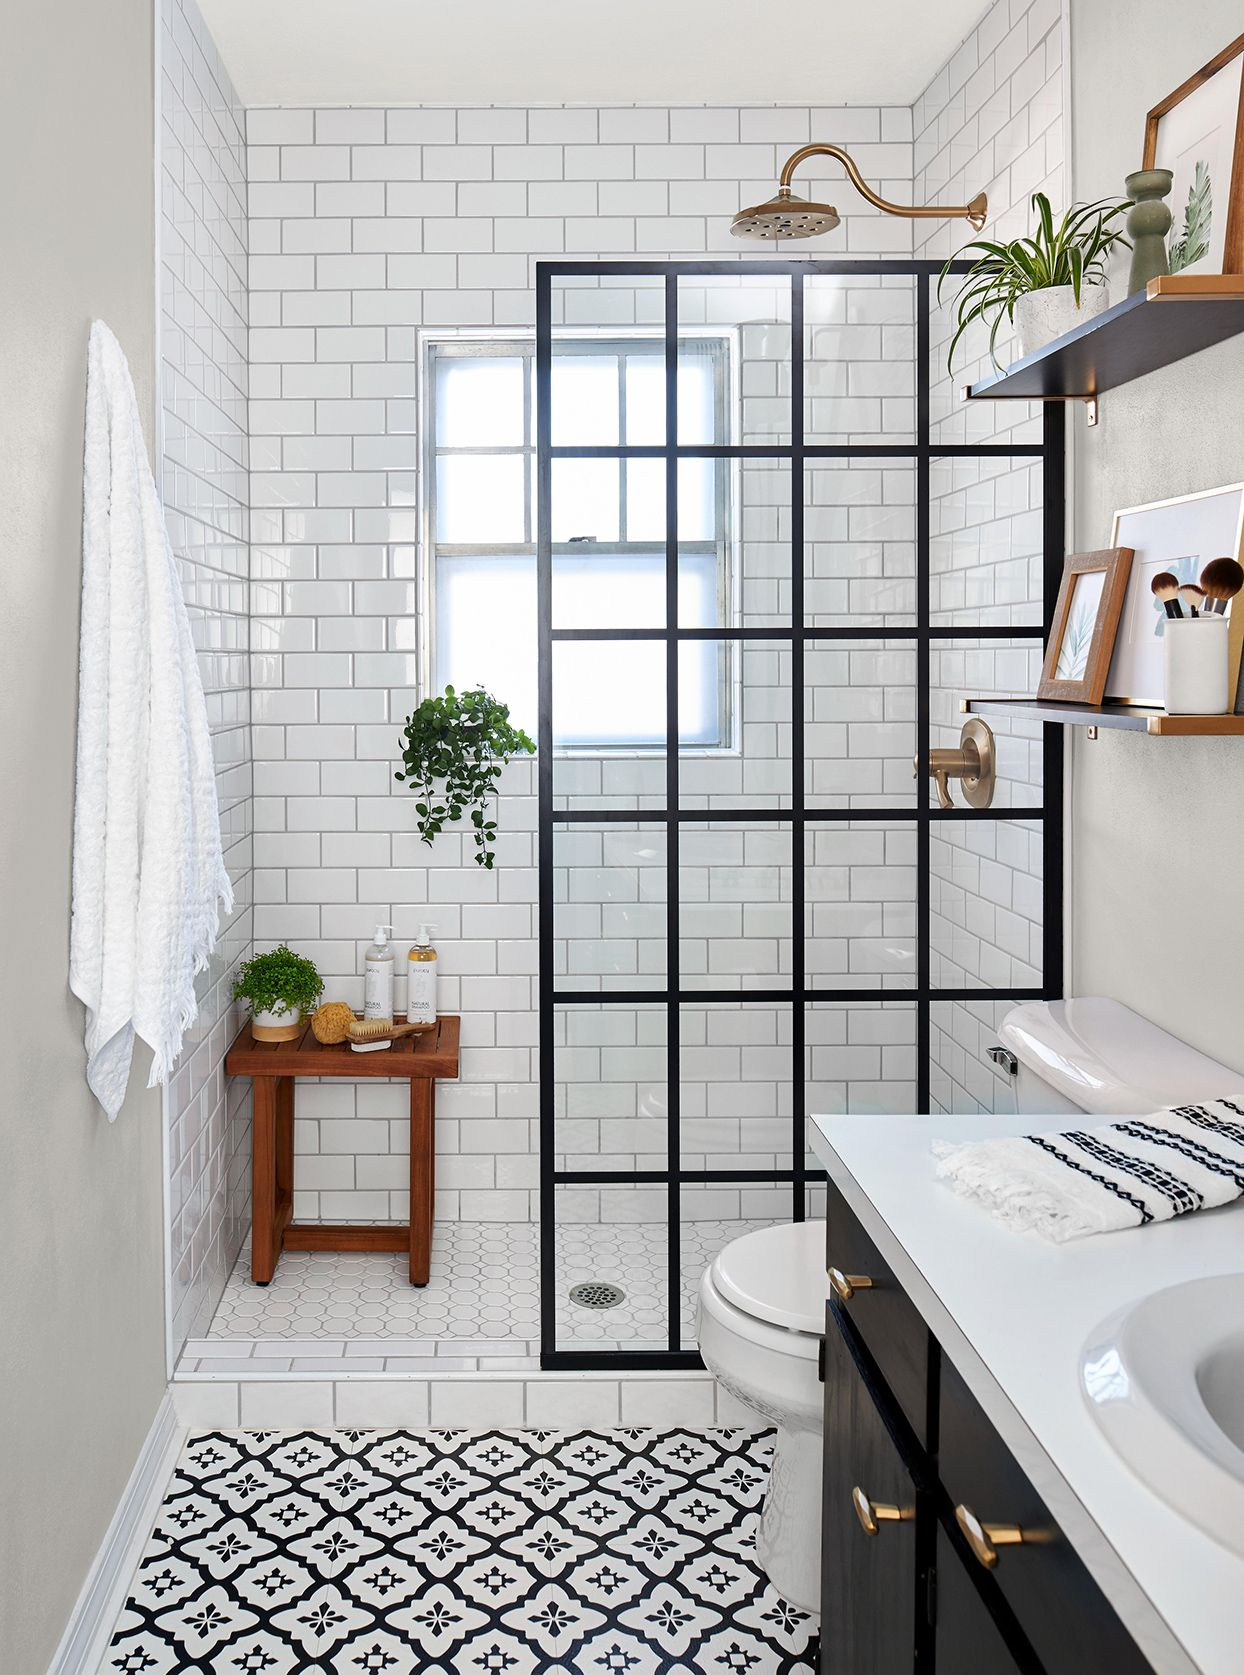 This Small Bath Makeover Blends Budget Friendly Diys And High End Finishes Small Bathroom Makeover Bathroom Interior Bathroom Interior Design